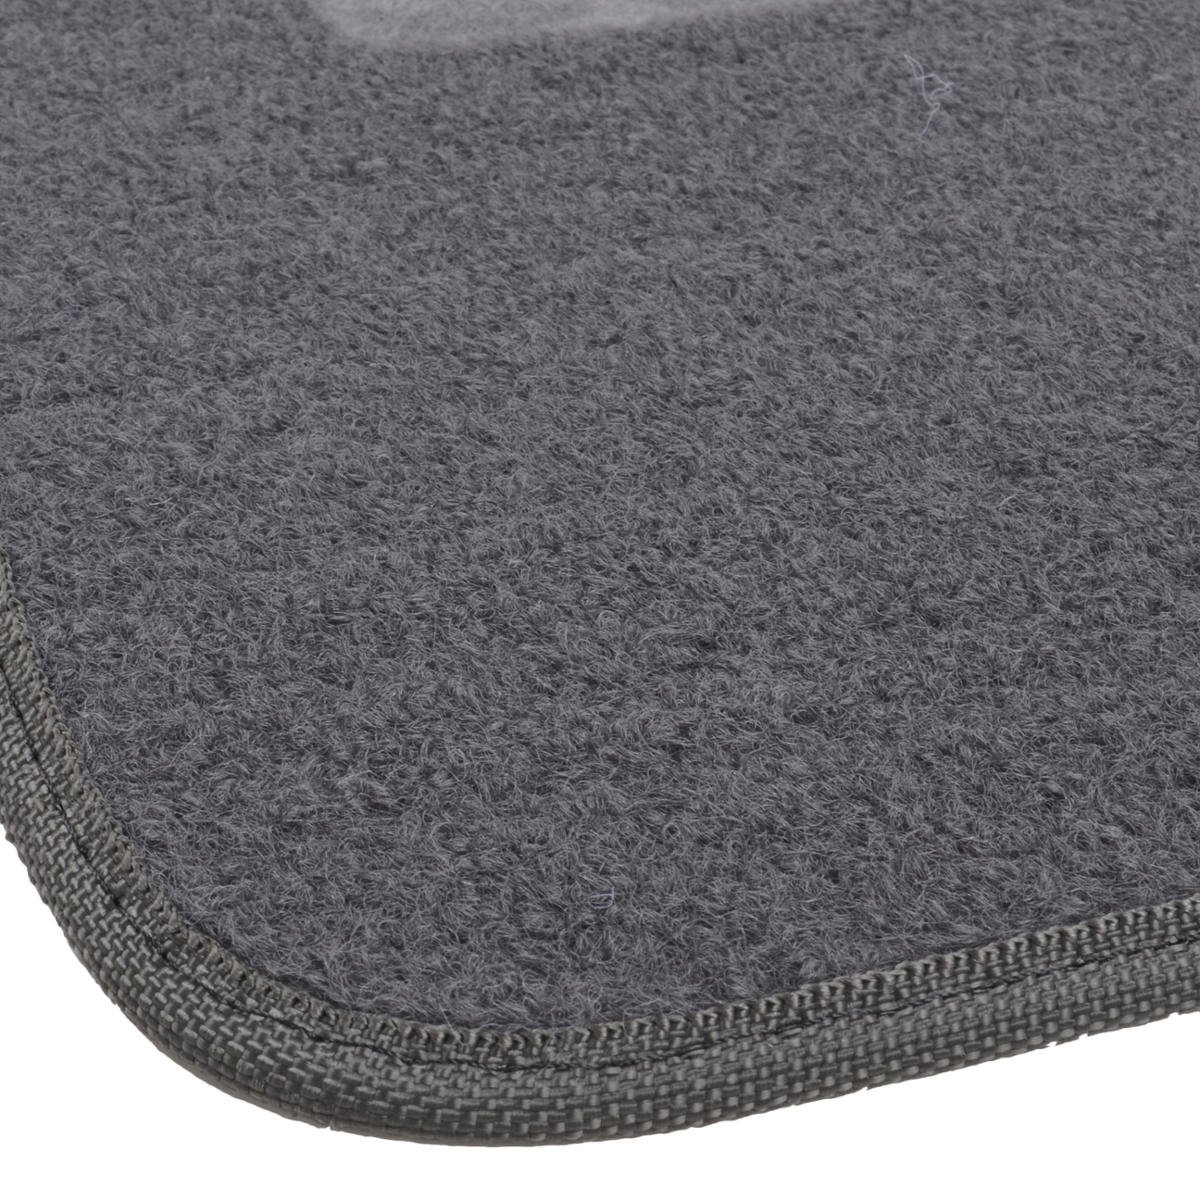 Motor Trend FatRug Carpet Floor Mats Dark Ash Gray Thick Robust Auto Gear for Your Car Truck or SUV